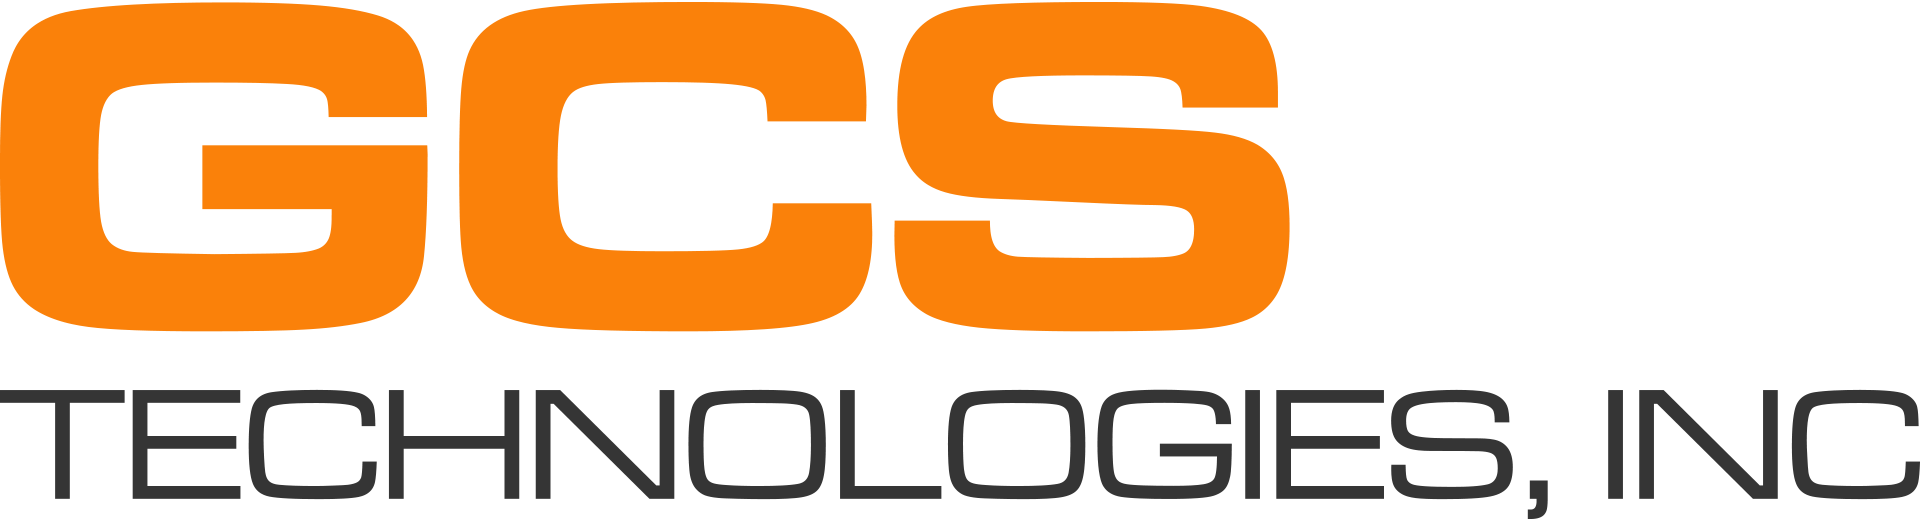 GCS Technologies, Inc. logo